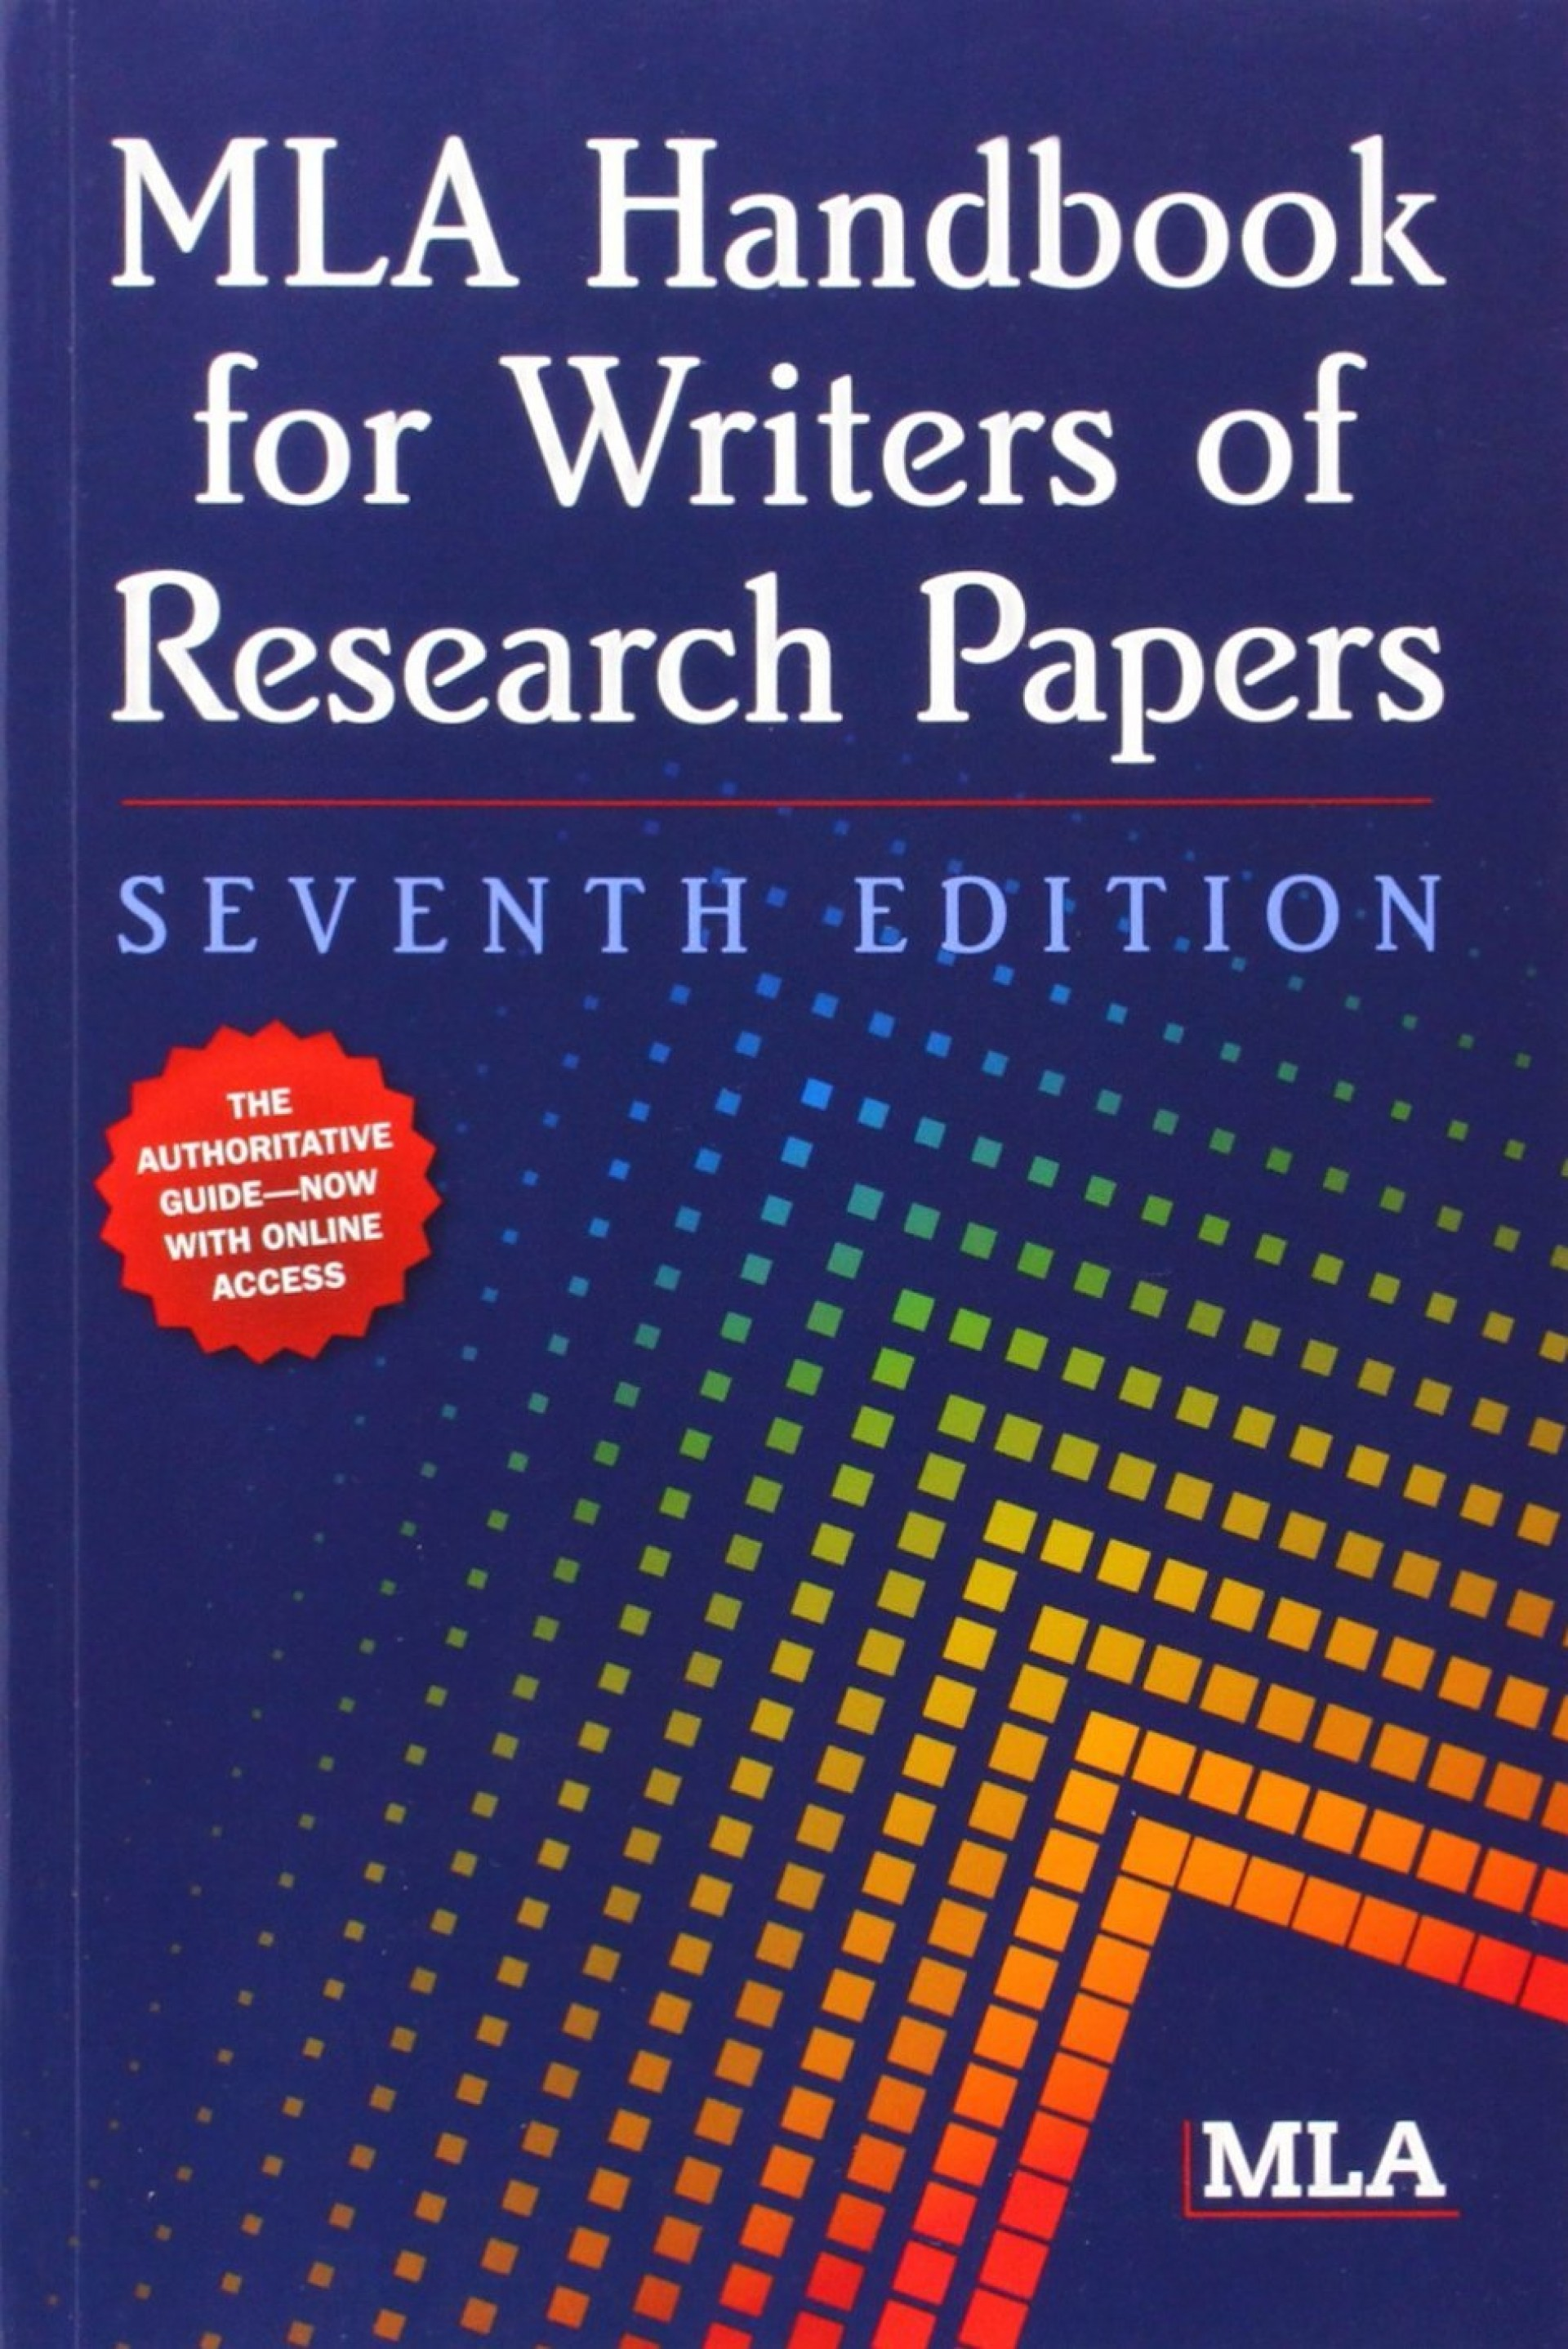 001 Research Paper According To The Mla Handbook For Writers Of Papers Unforgettable 8th Edition Pdf 7th 2009 1920